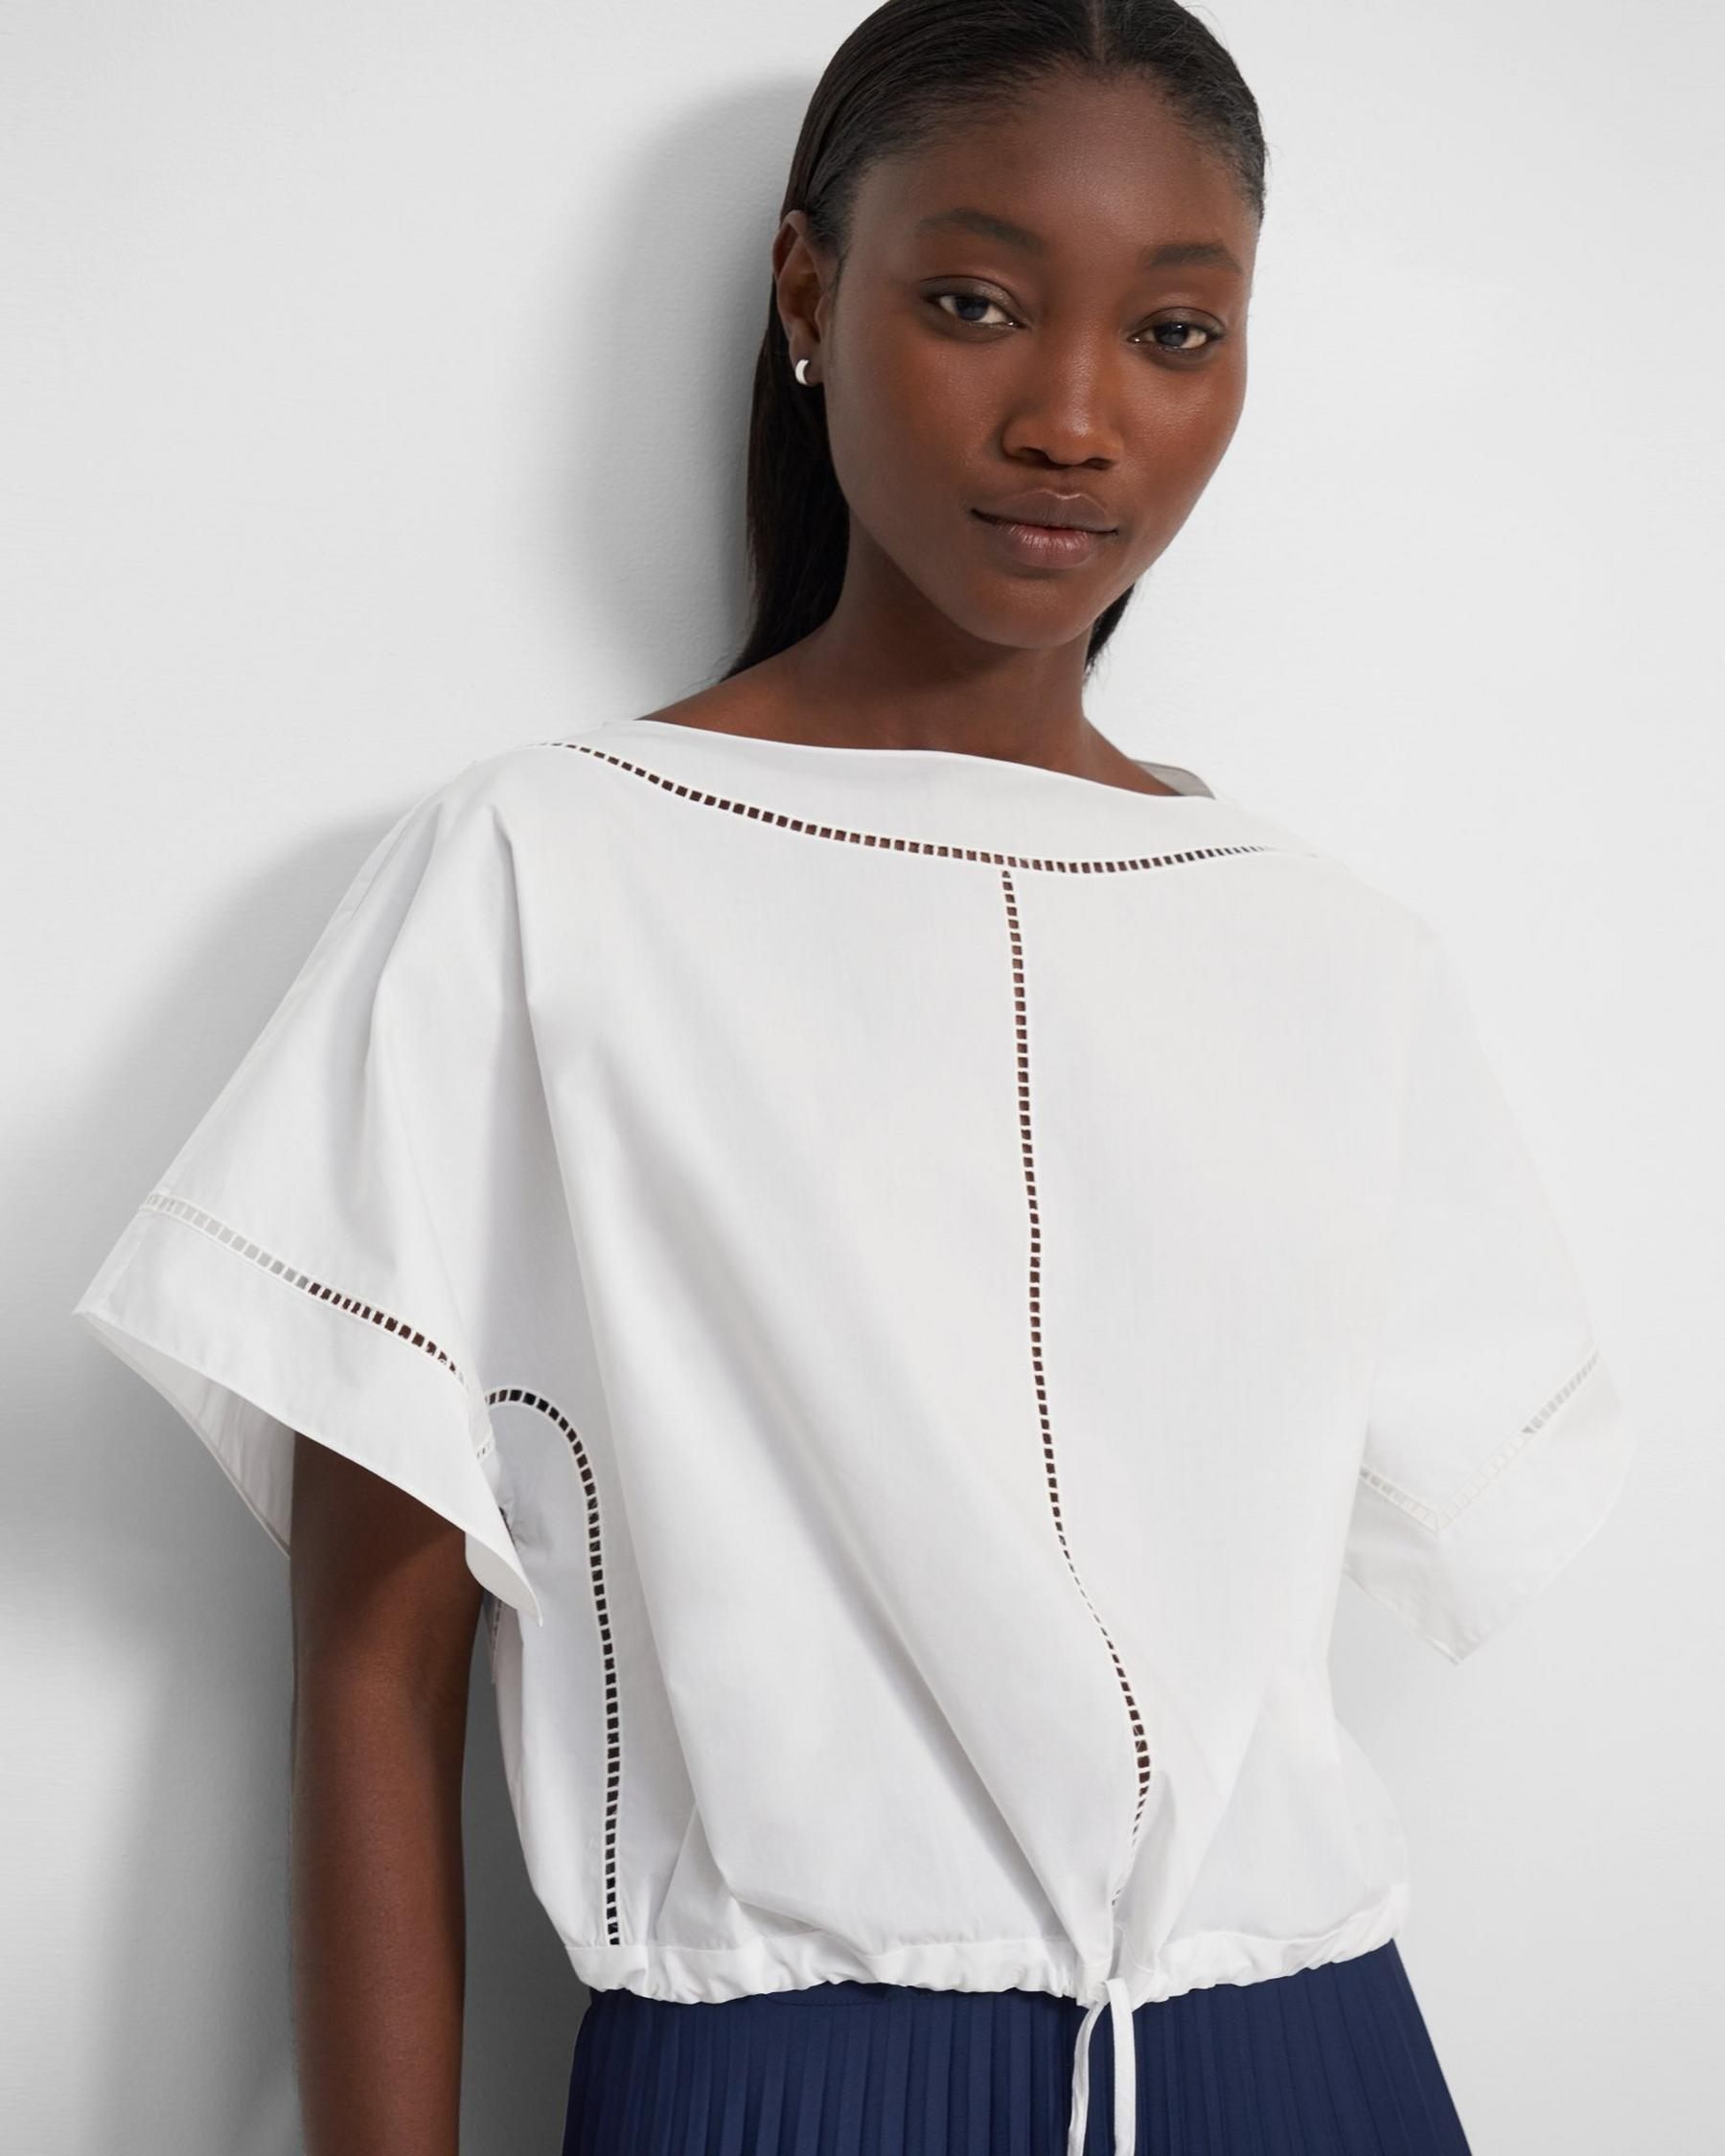 Short-Sleeve Top in Eyelet Cotton